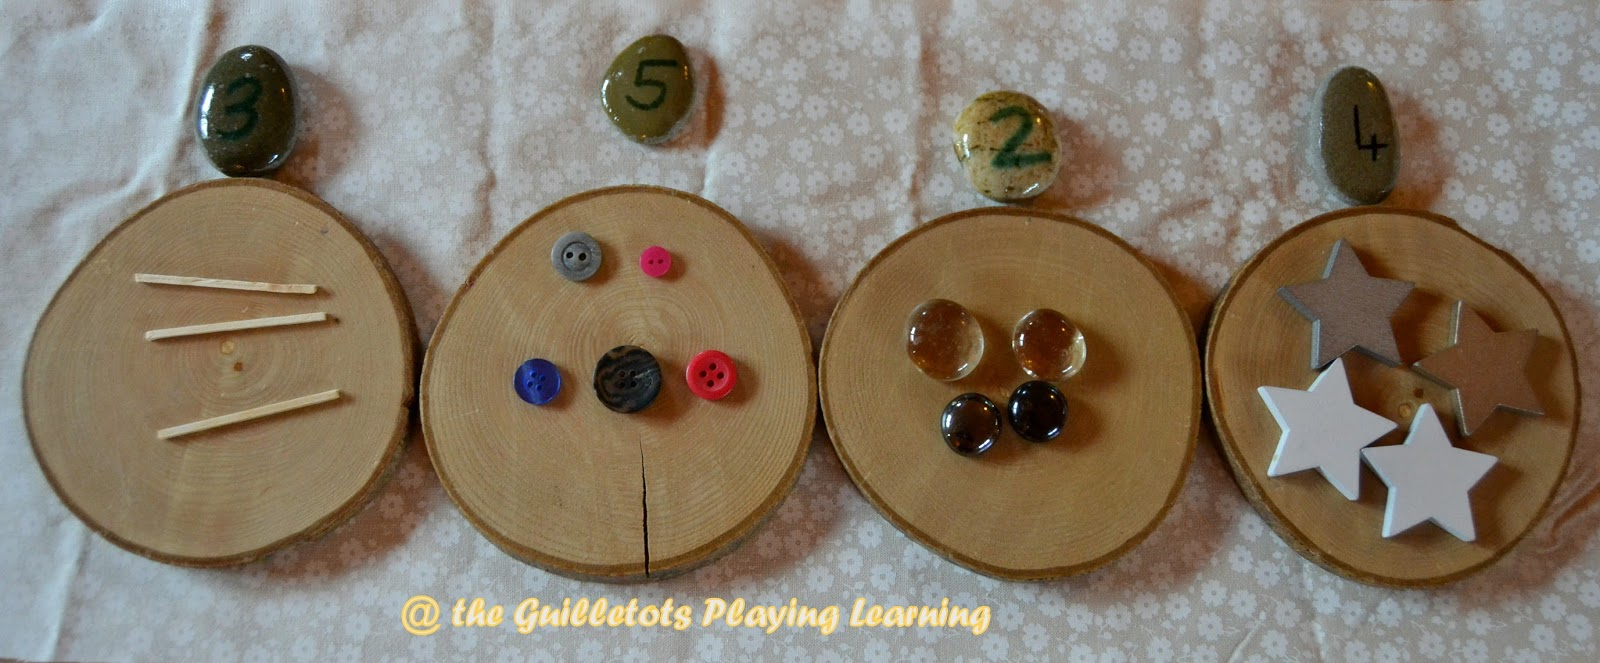 The Guilletos Playful Learning: Reggio Emilia and Playful ...